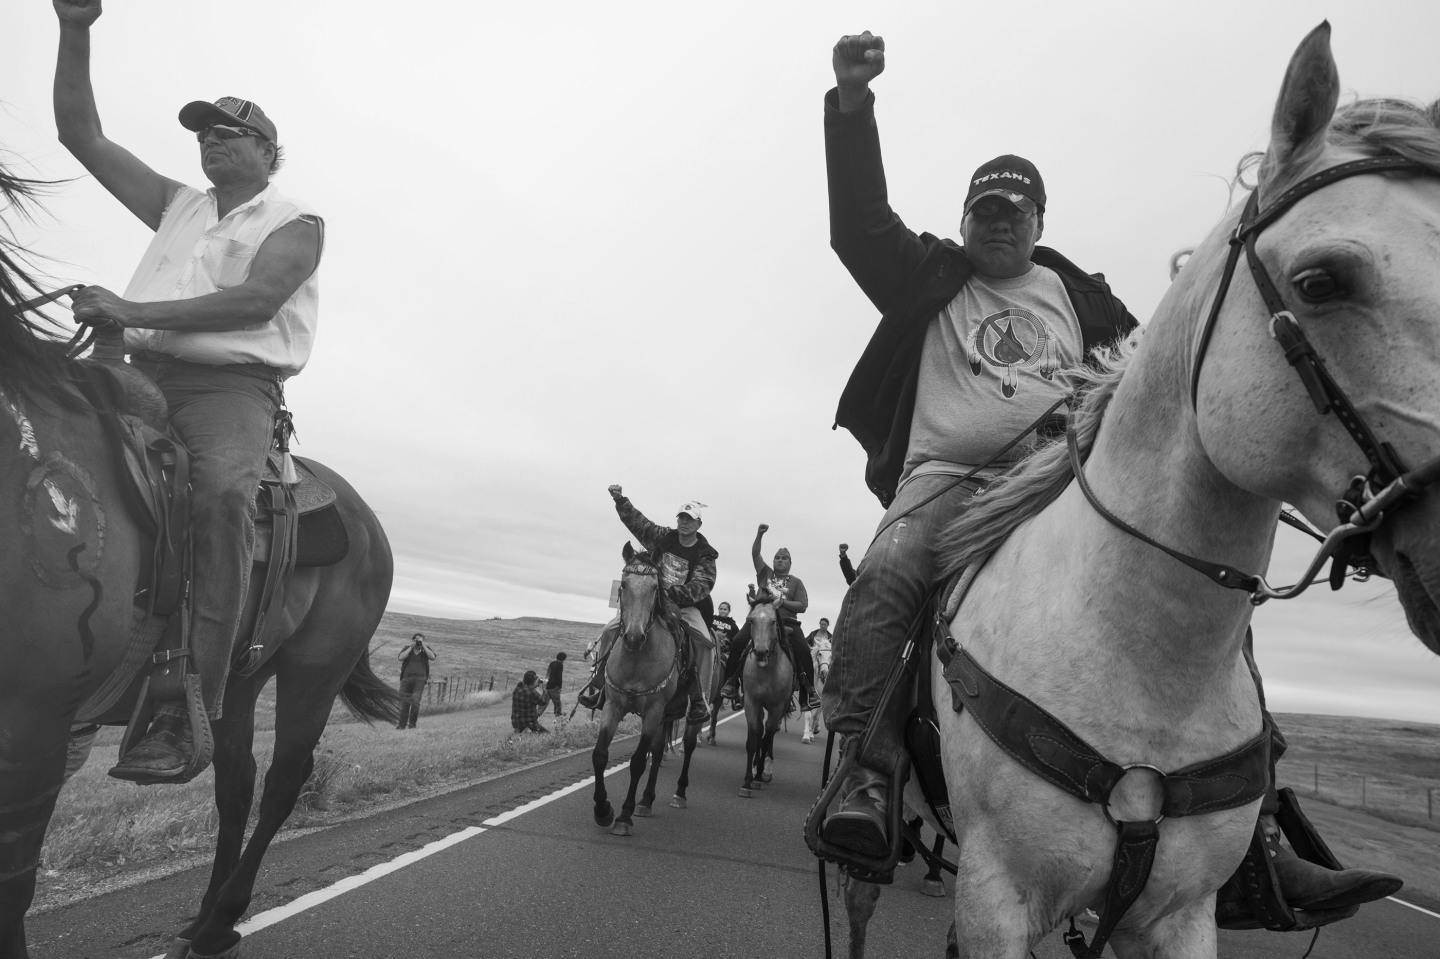 6 Indigenous Activists On Why They're Fighting The Dakota Access Pipeline